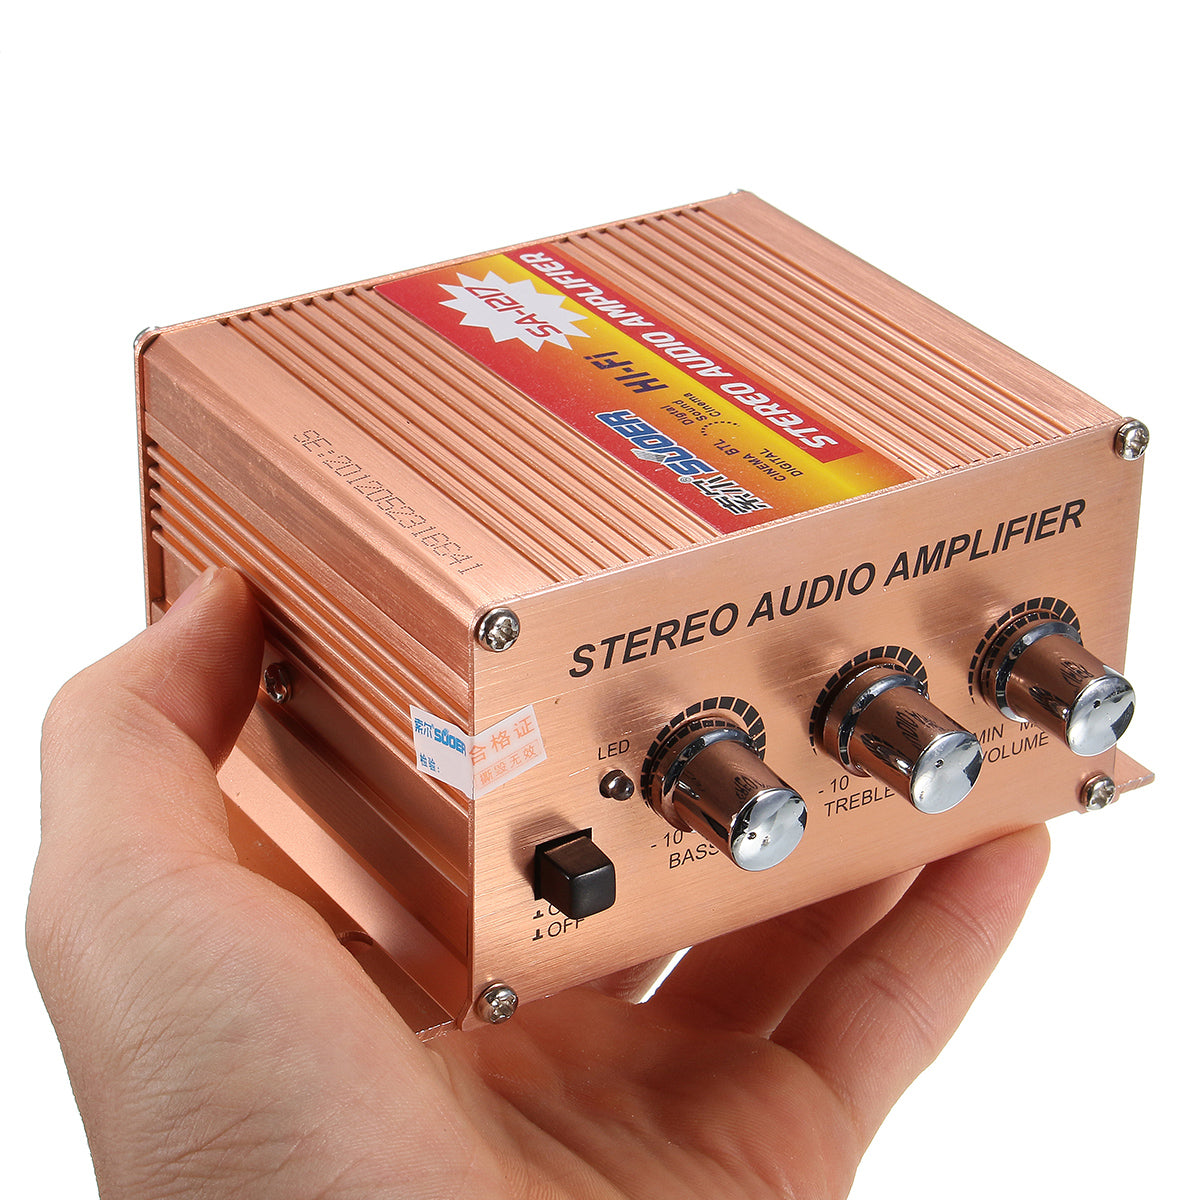 12v Boost To 32vdc 180w Power Supply Inverter Tl494 Irfz44n For Highfidelity And Pure Sine Wave 1 Based On Class D Amplifier Suoer Sa 1217 Mini Hi Fi 500w 21ch Channel Stereo Audio